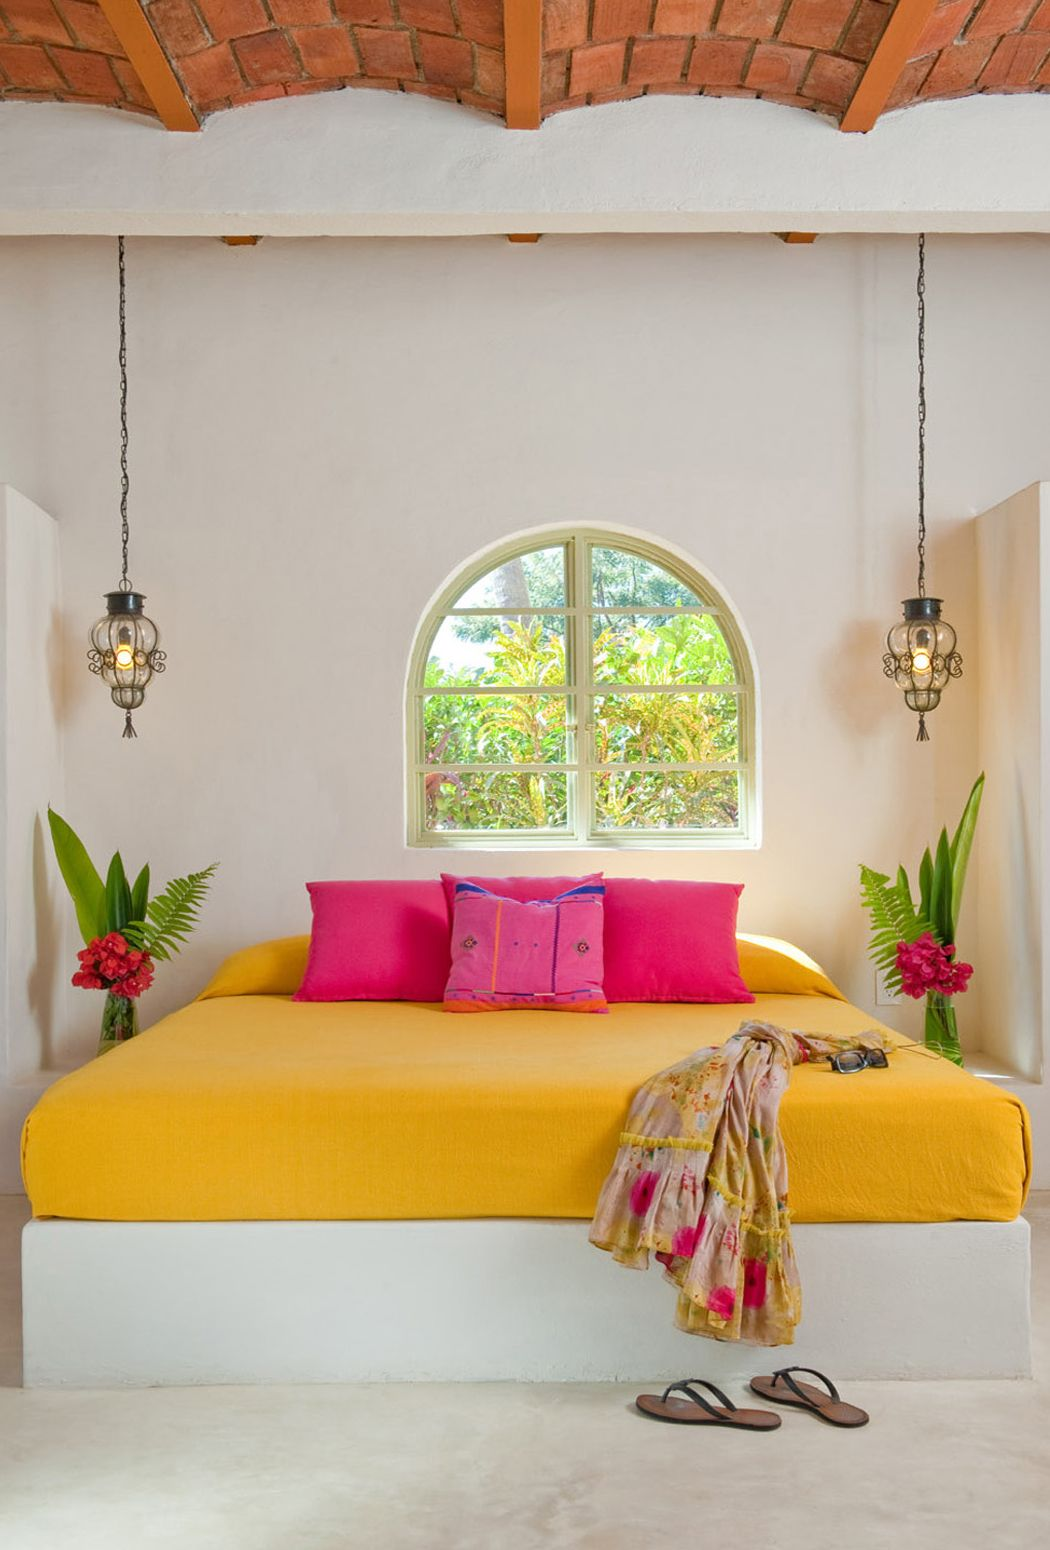 Colorful Bedroom Designs Casa Dos Chicos Sayulita Mexico House Villas And Ux Ui Designer